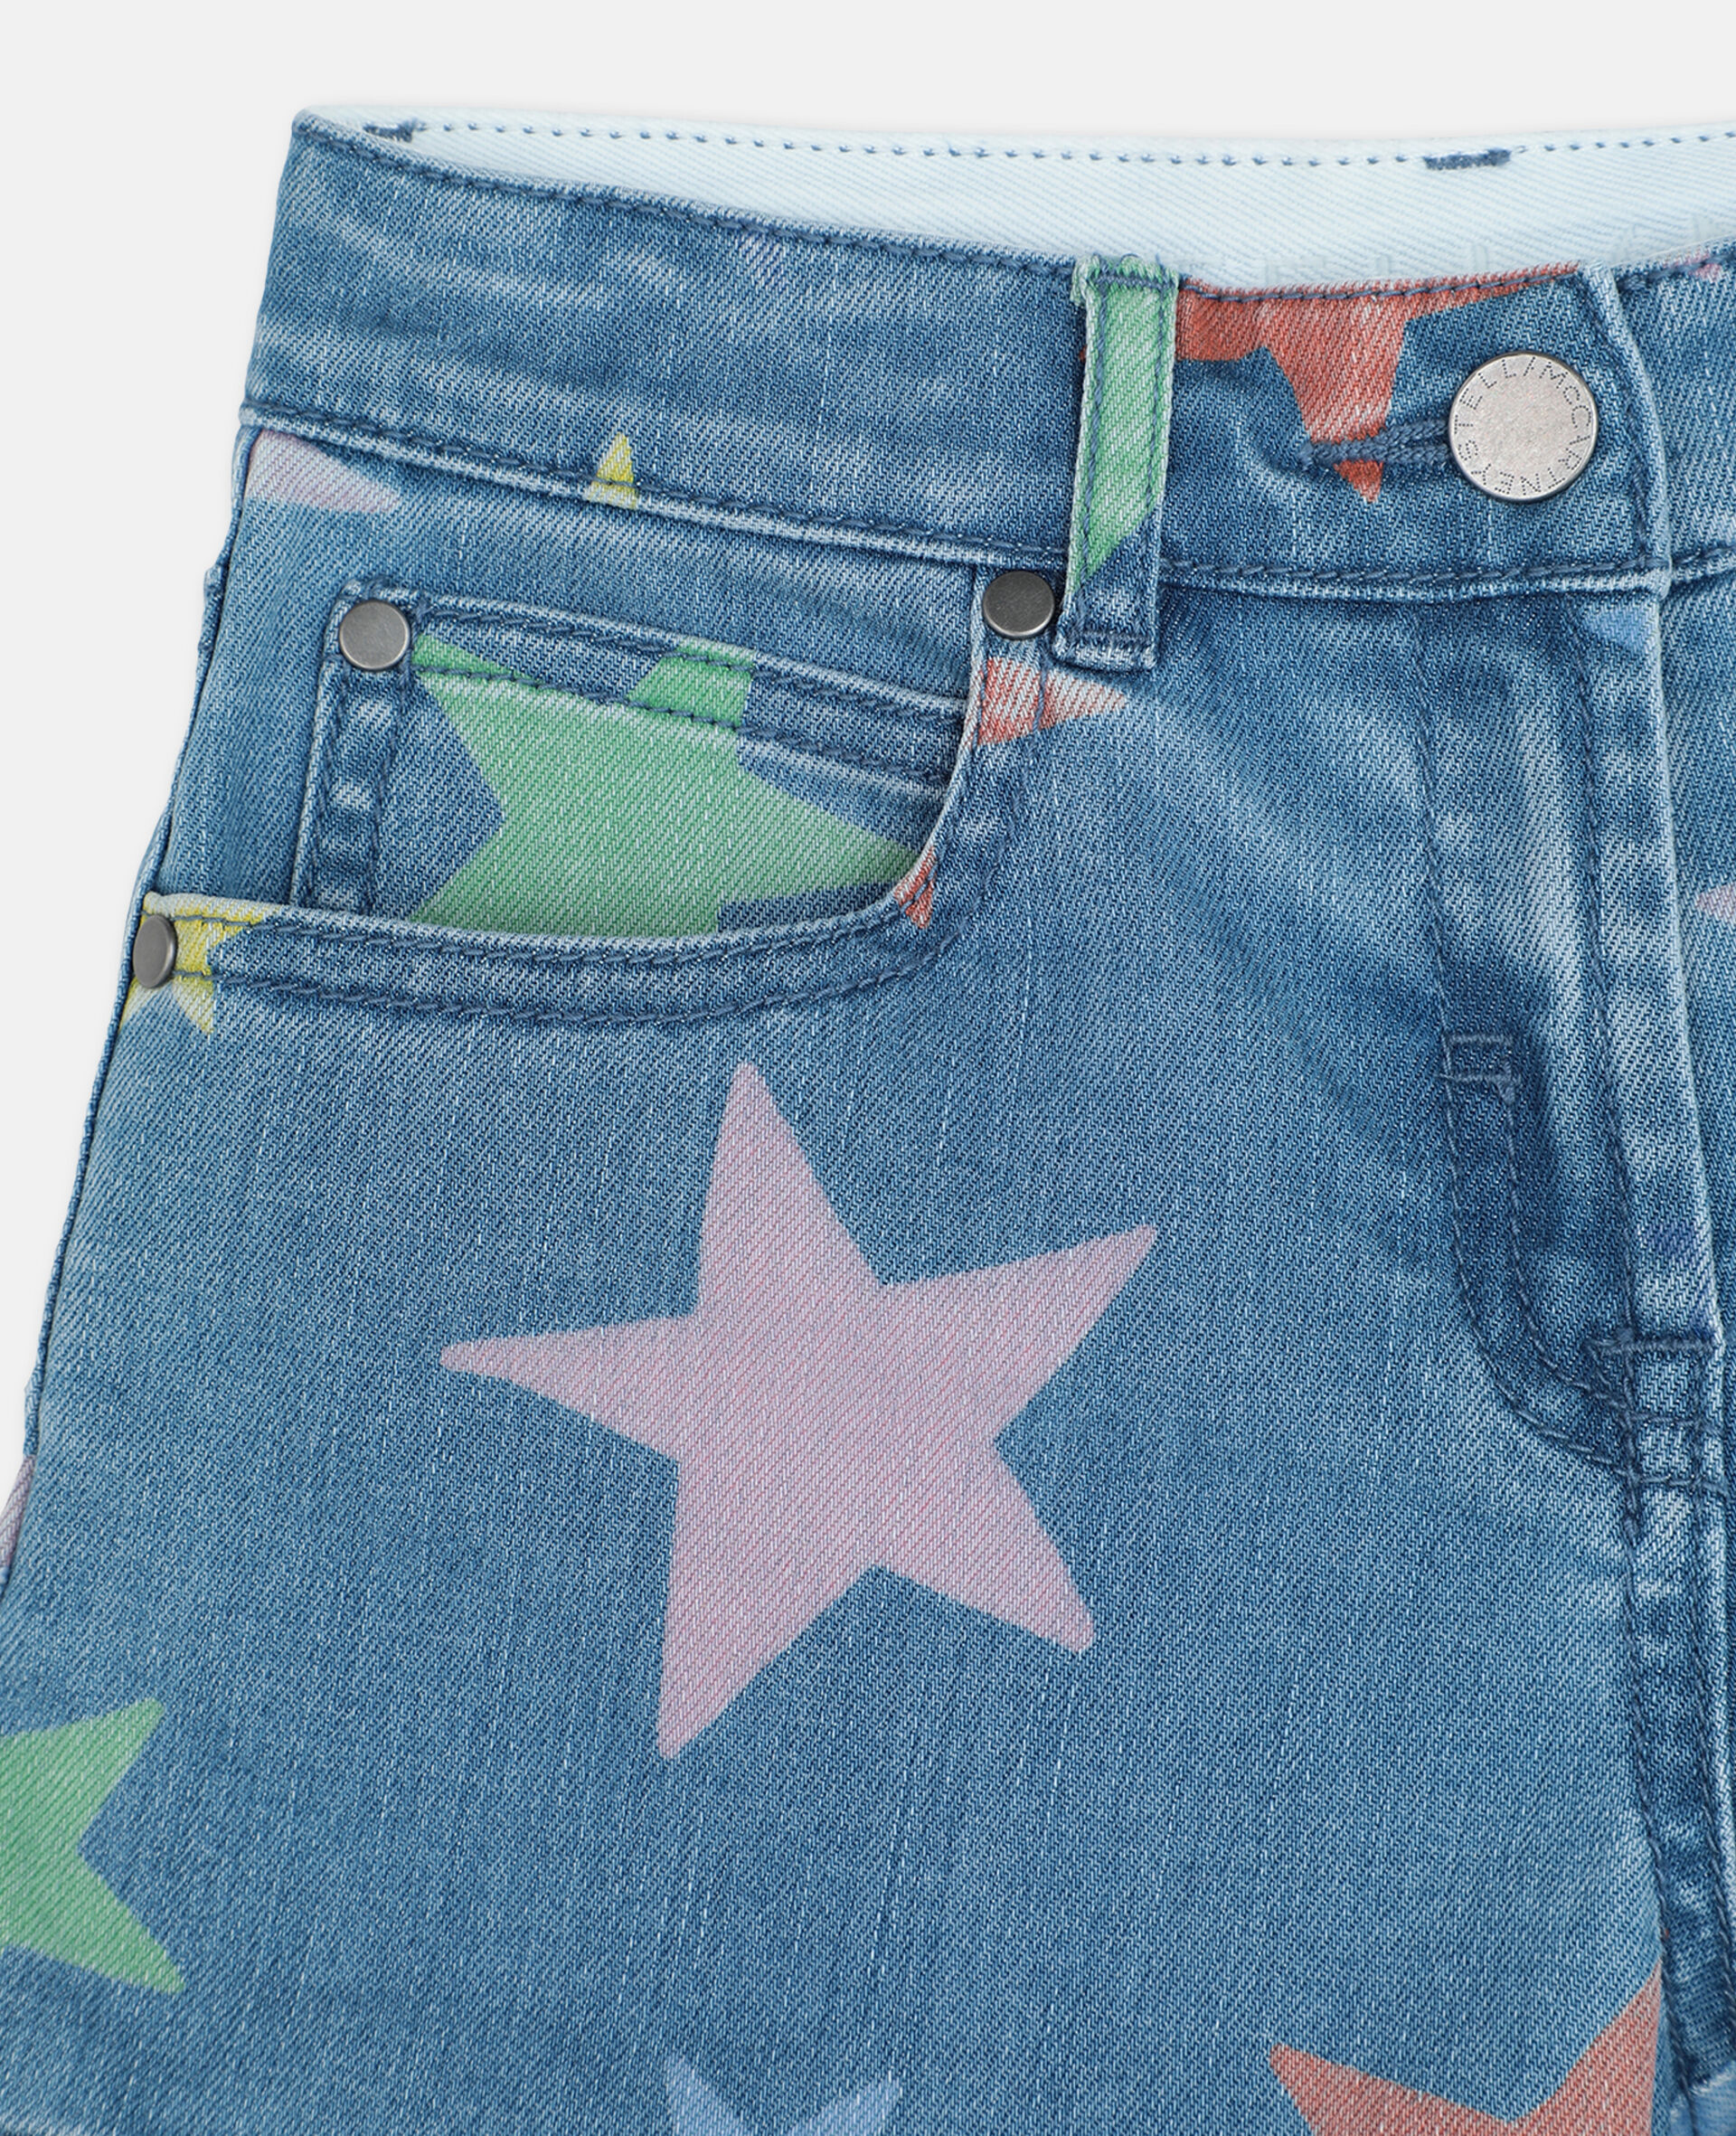 Multicolour Stars牛仔短裤 -Multicolored-large image number 1